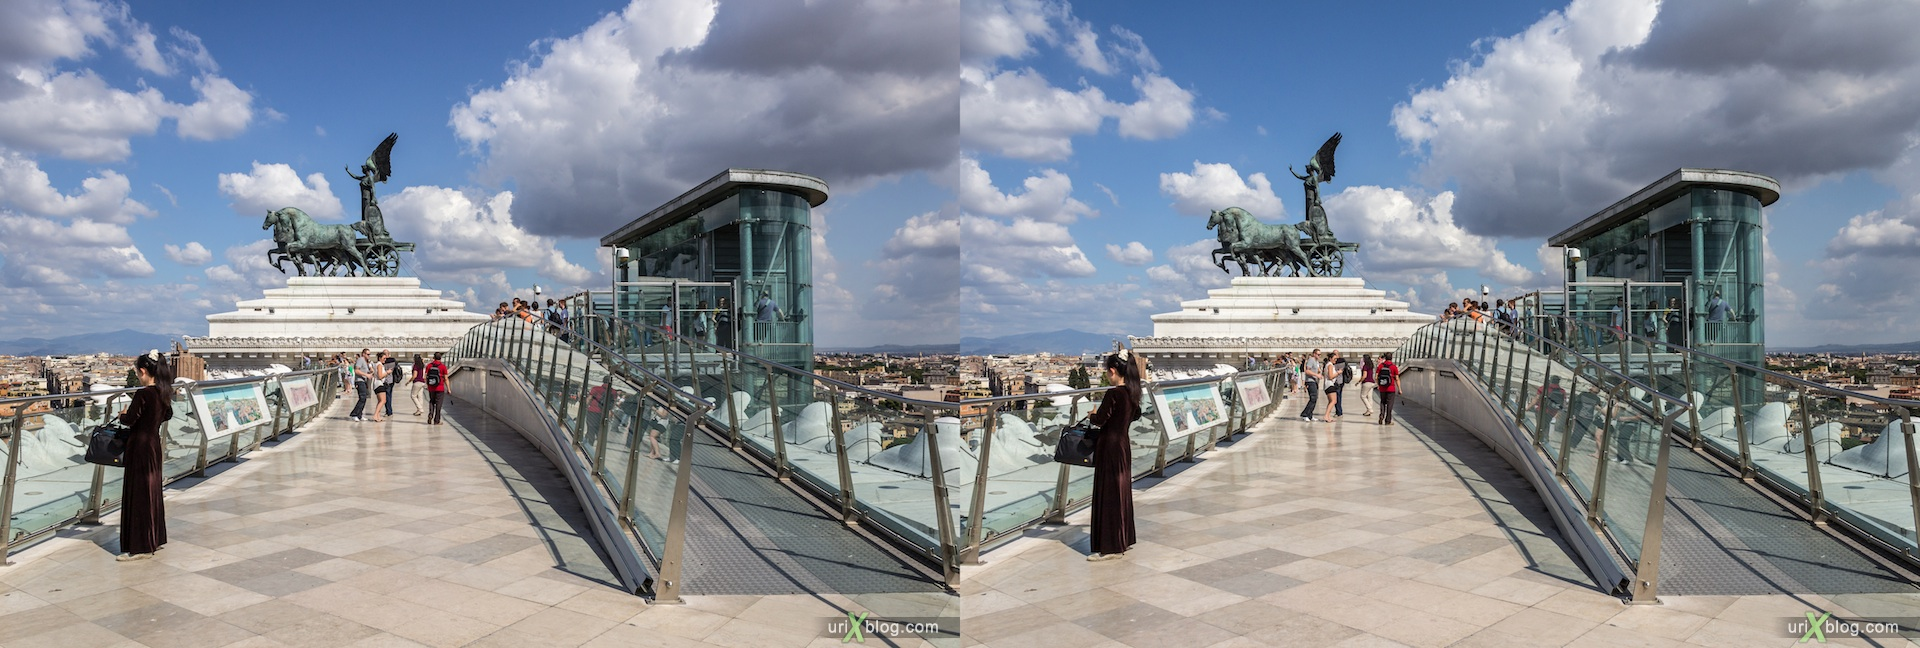 2012, Vittoriano, Monument of Vittorio Emanuele II, roof, chariot, Rome, Italy, Europe, 3D, stereo pair, cross-eyed, crossview, cross view stereo pair